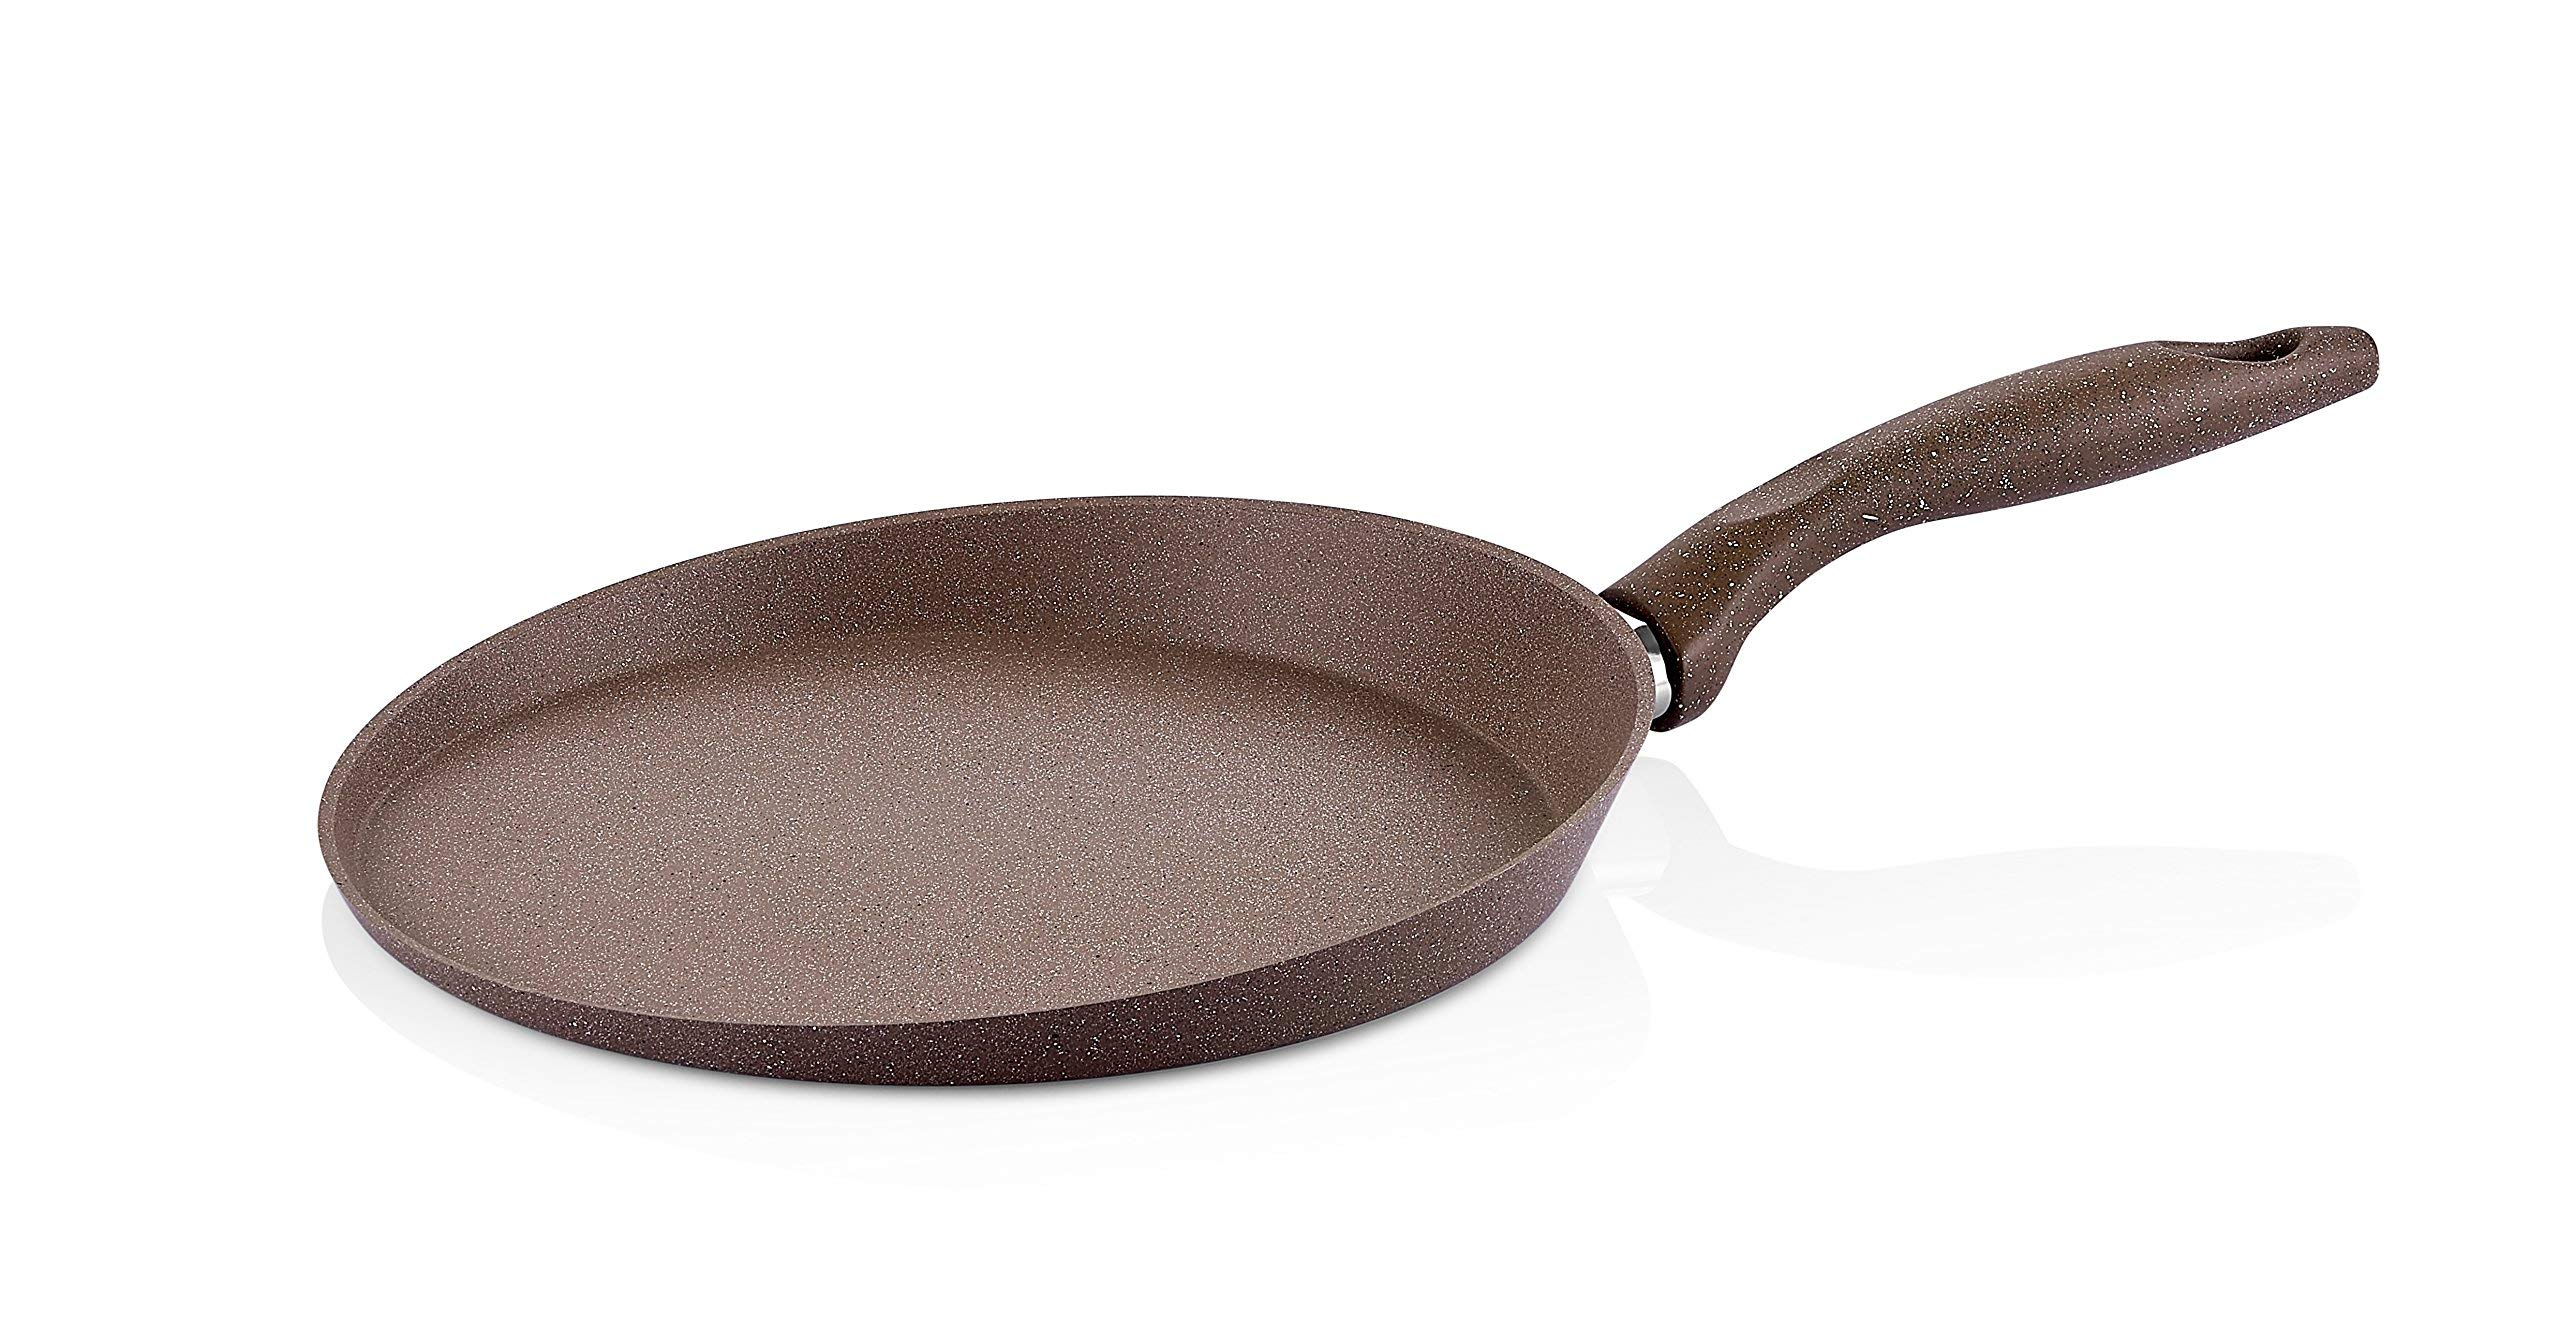 Granite Crepe Pan Non-Stick Scratch-Resistant Forged Aluminum w/ QuanTanium Coating | Even Heating Cooking Dishware (11-Inch) by SAFLON